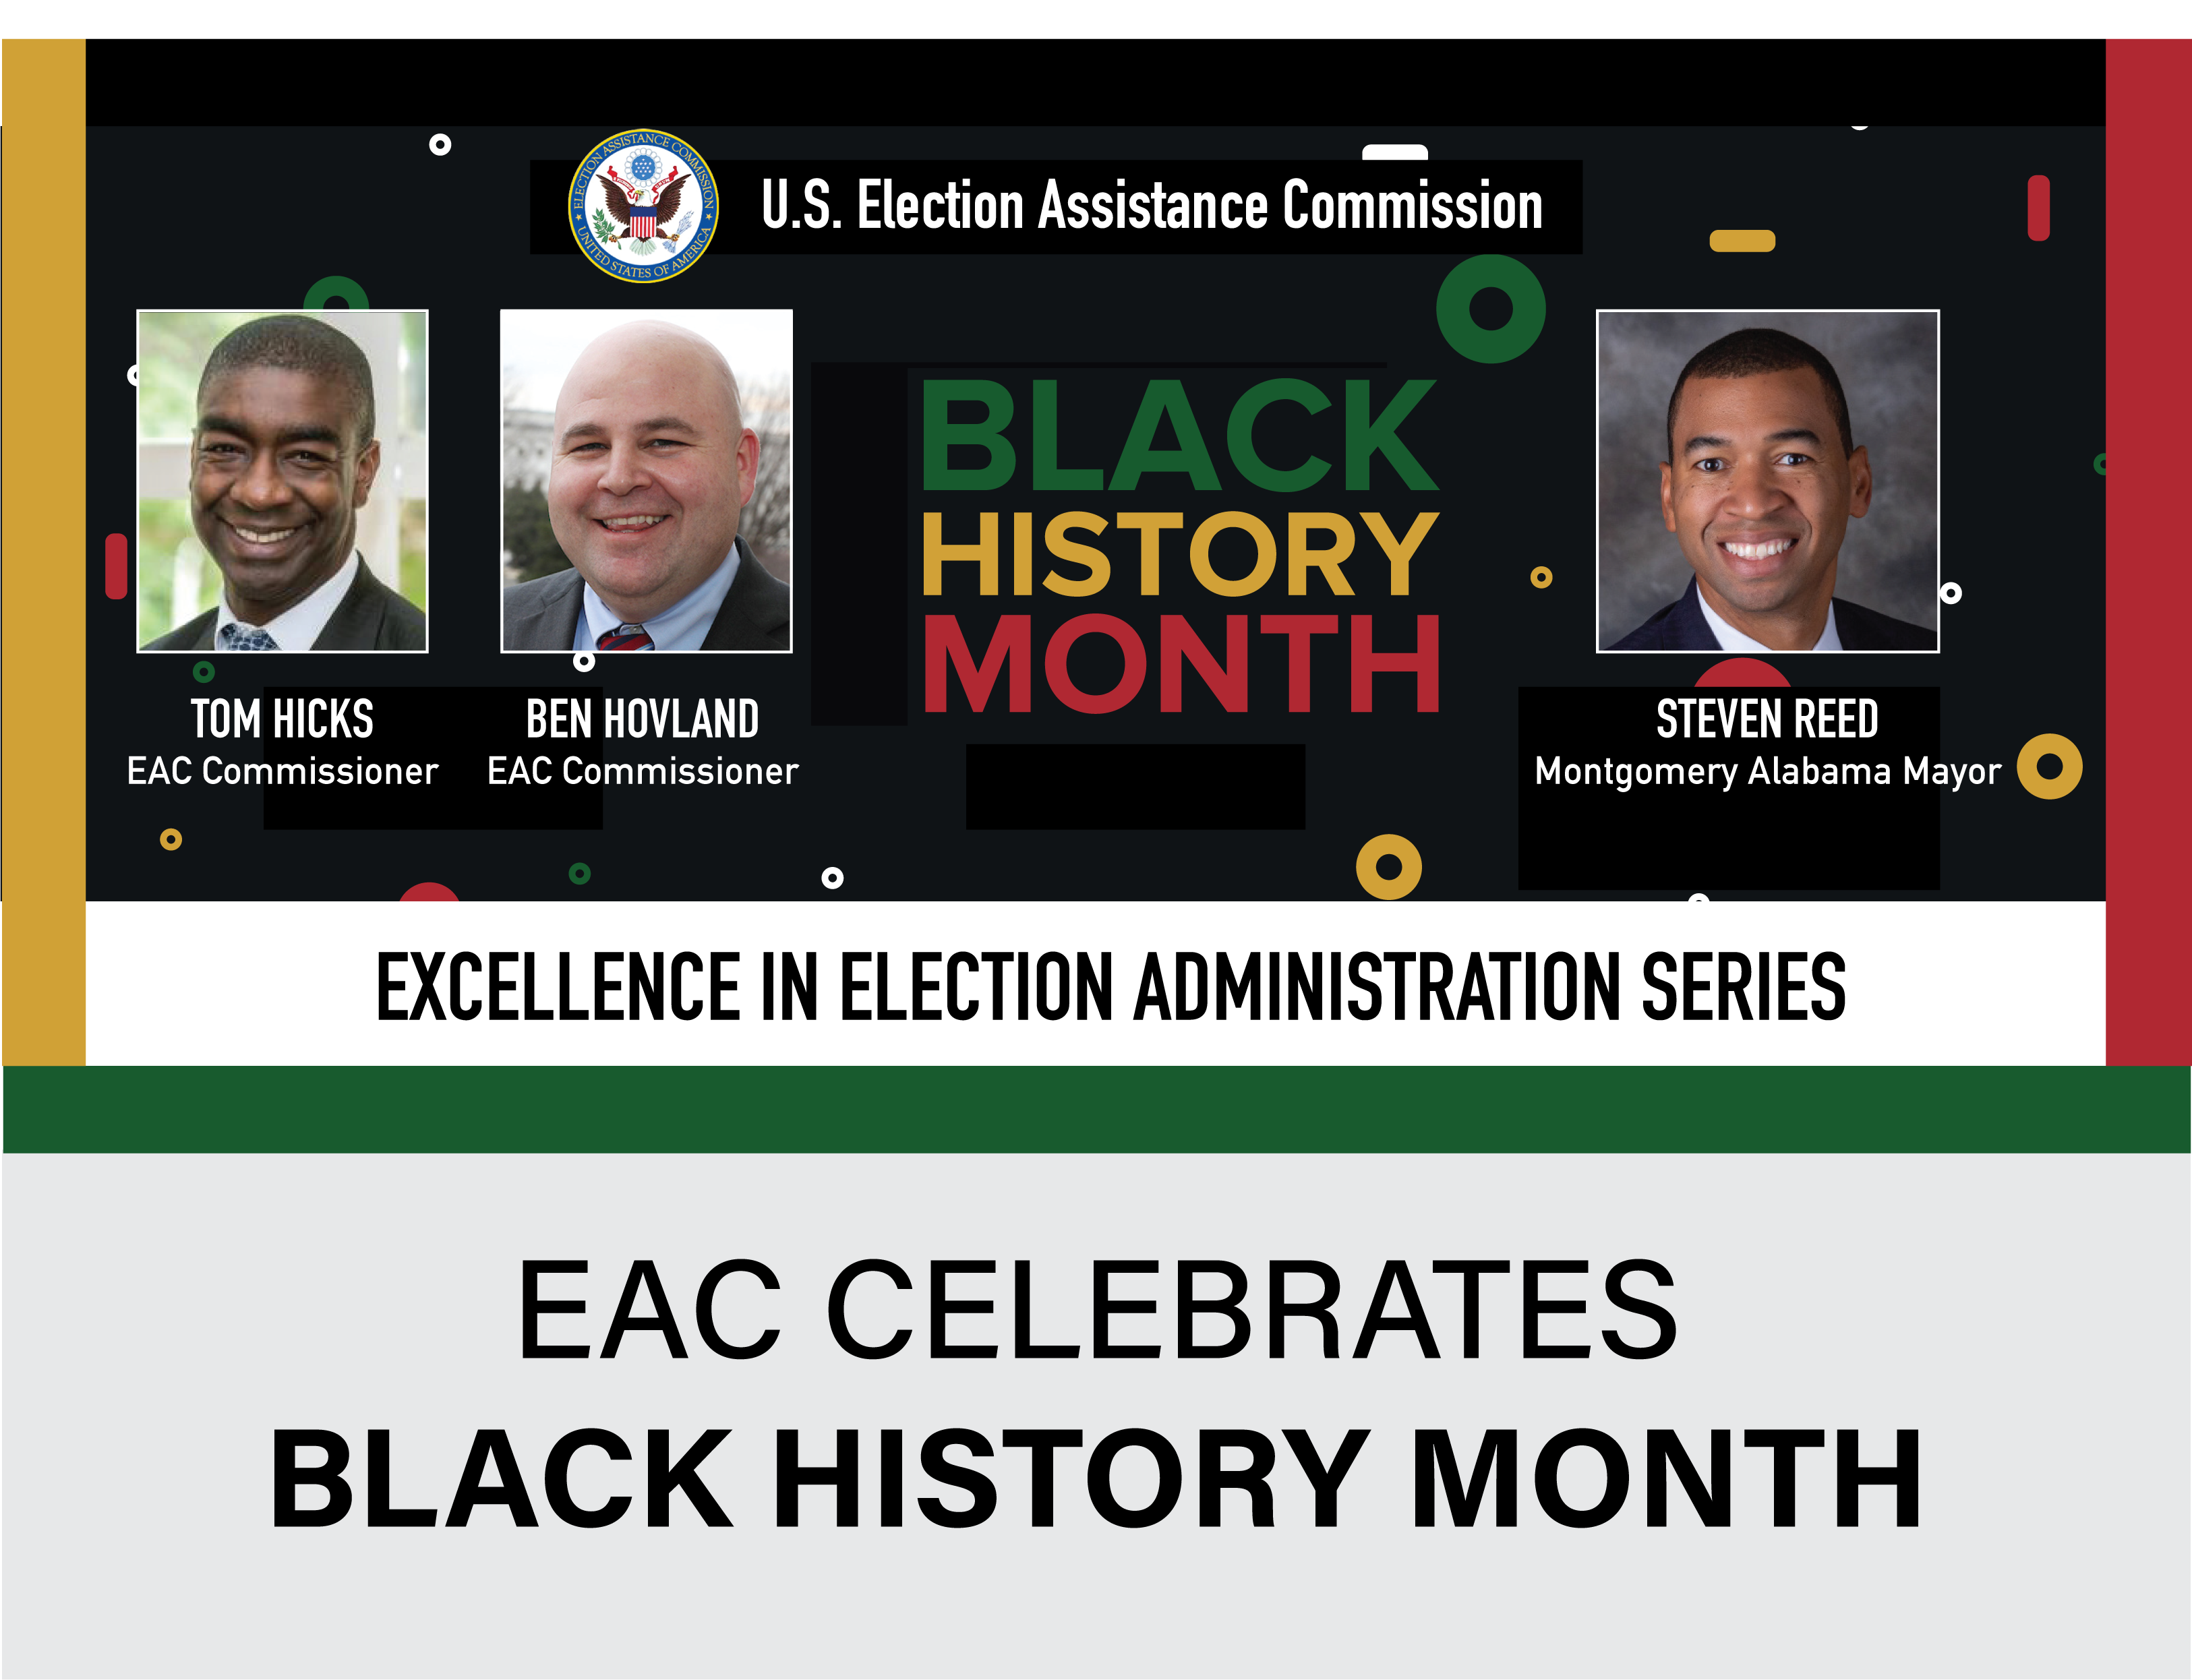 EAC Celebrates Black History Month. Excellence in Election Administration with Mayor Stephen Reed and Tom Hicks and Ben Hovland